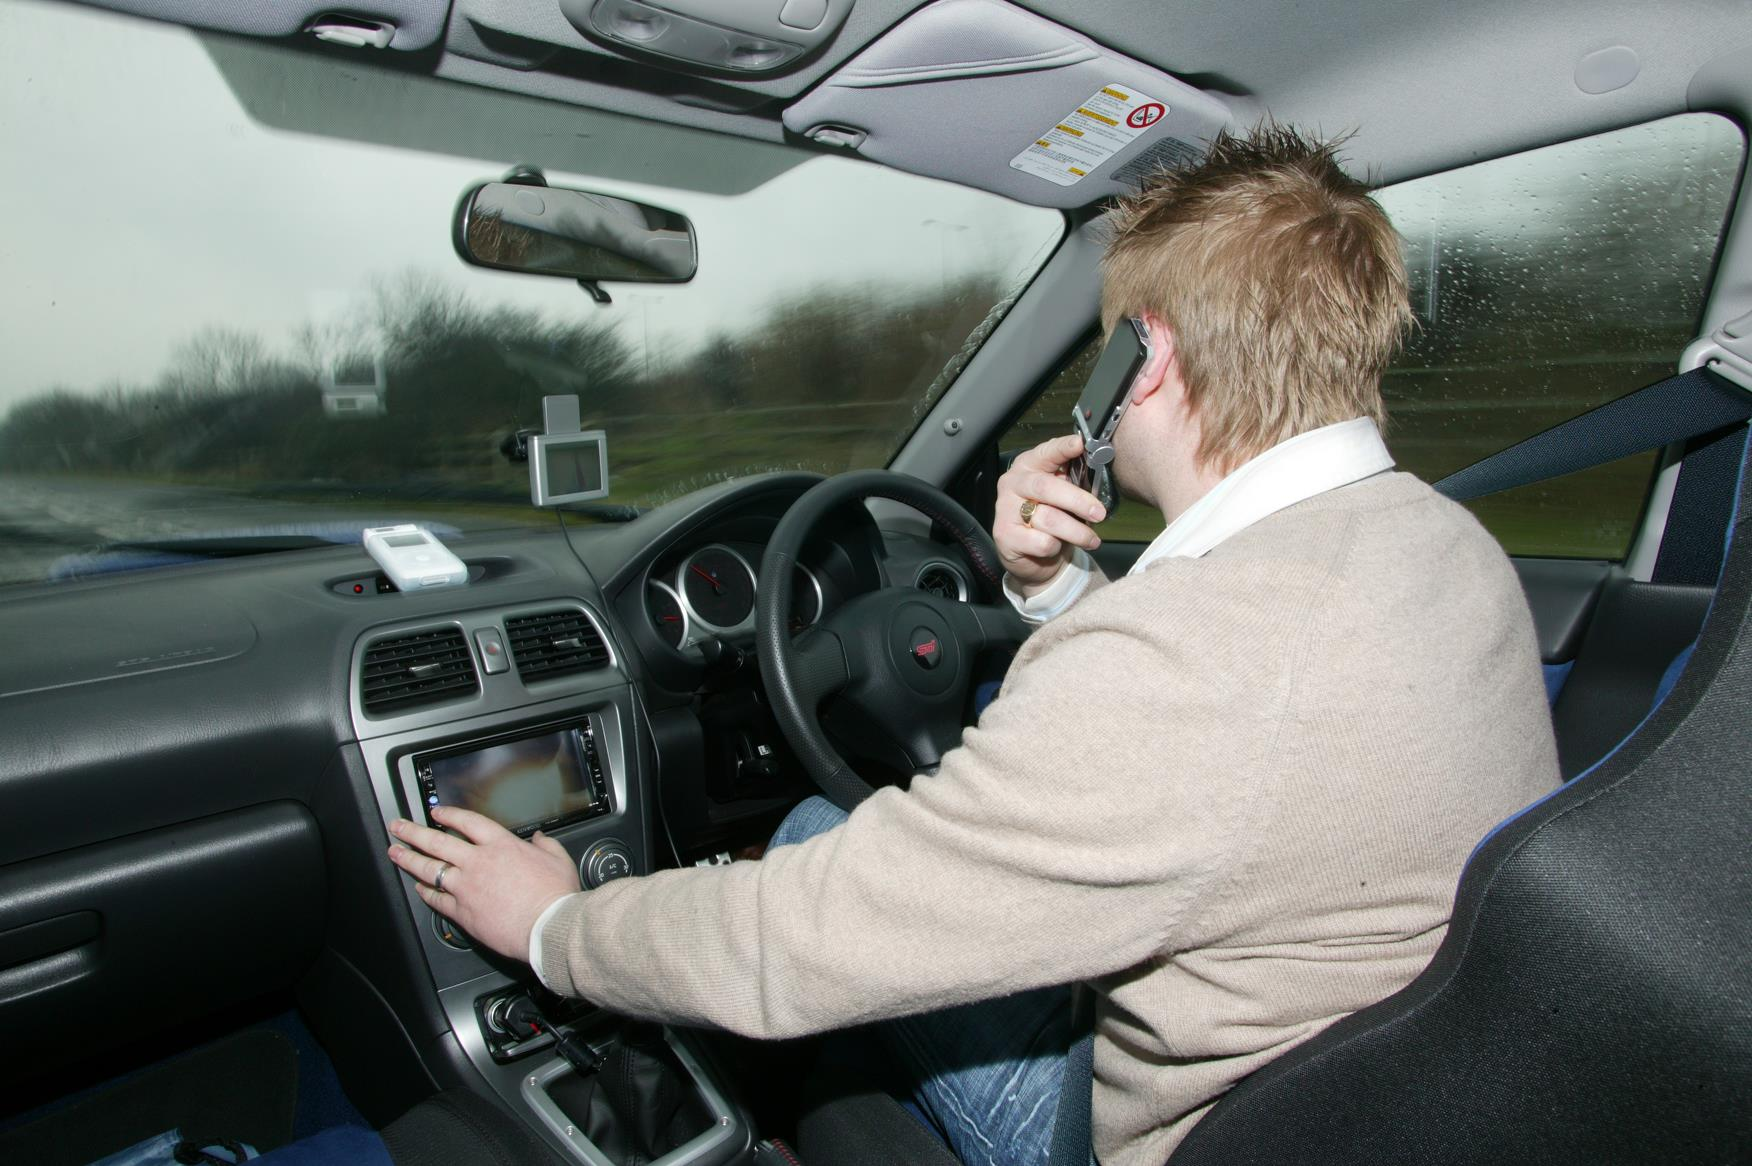 using phone while driving essay Persuasive essay - dangers of cell phone use while driving.